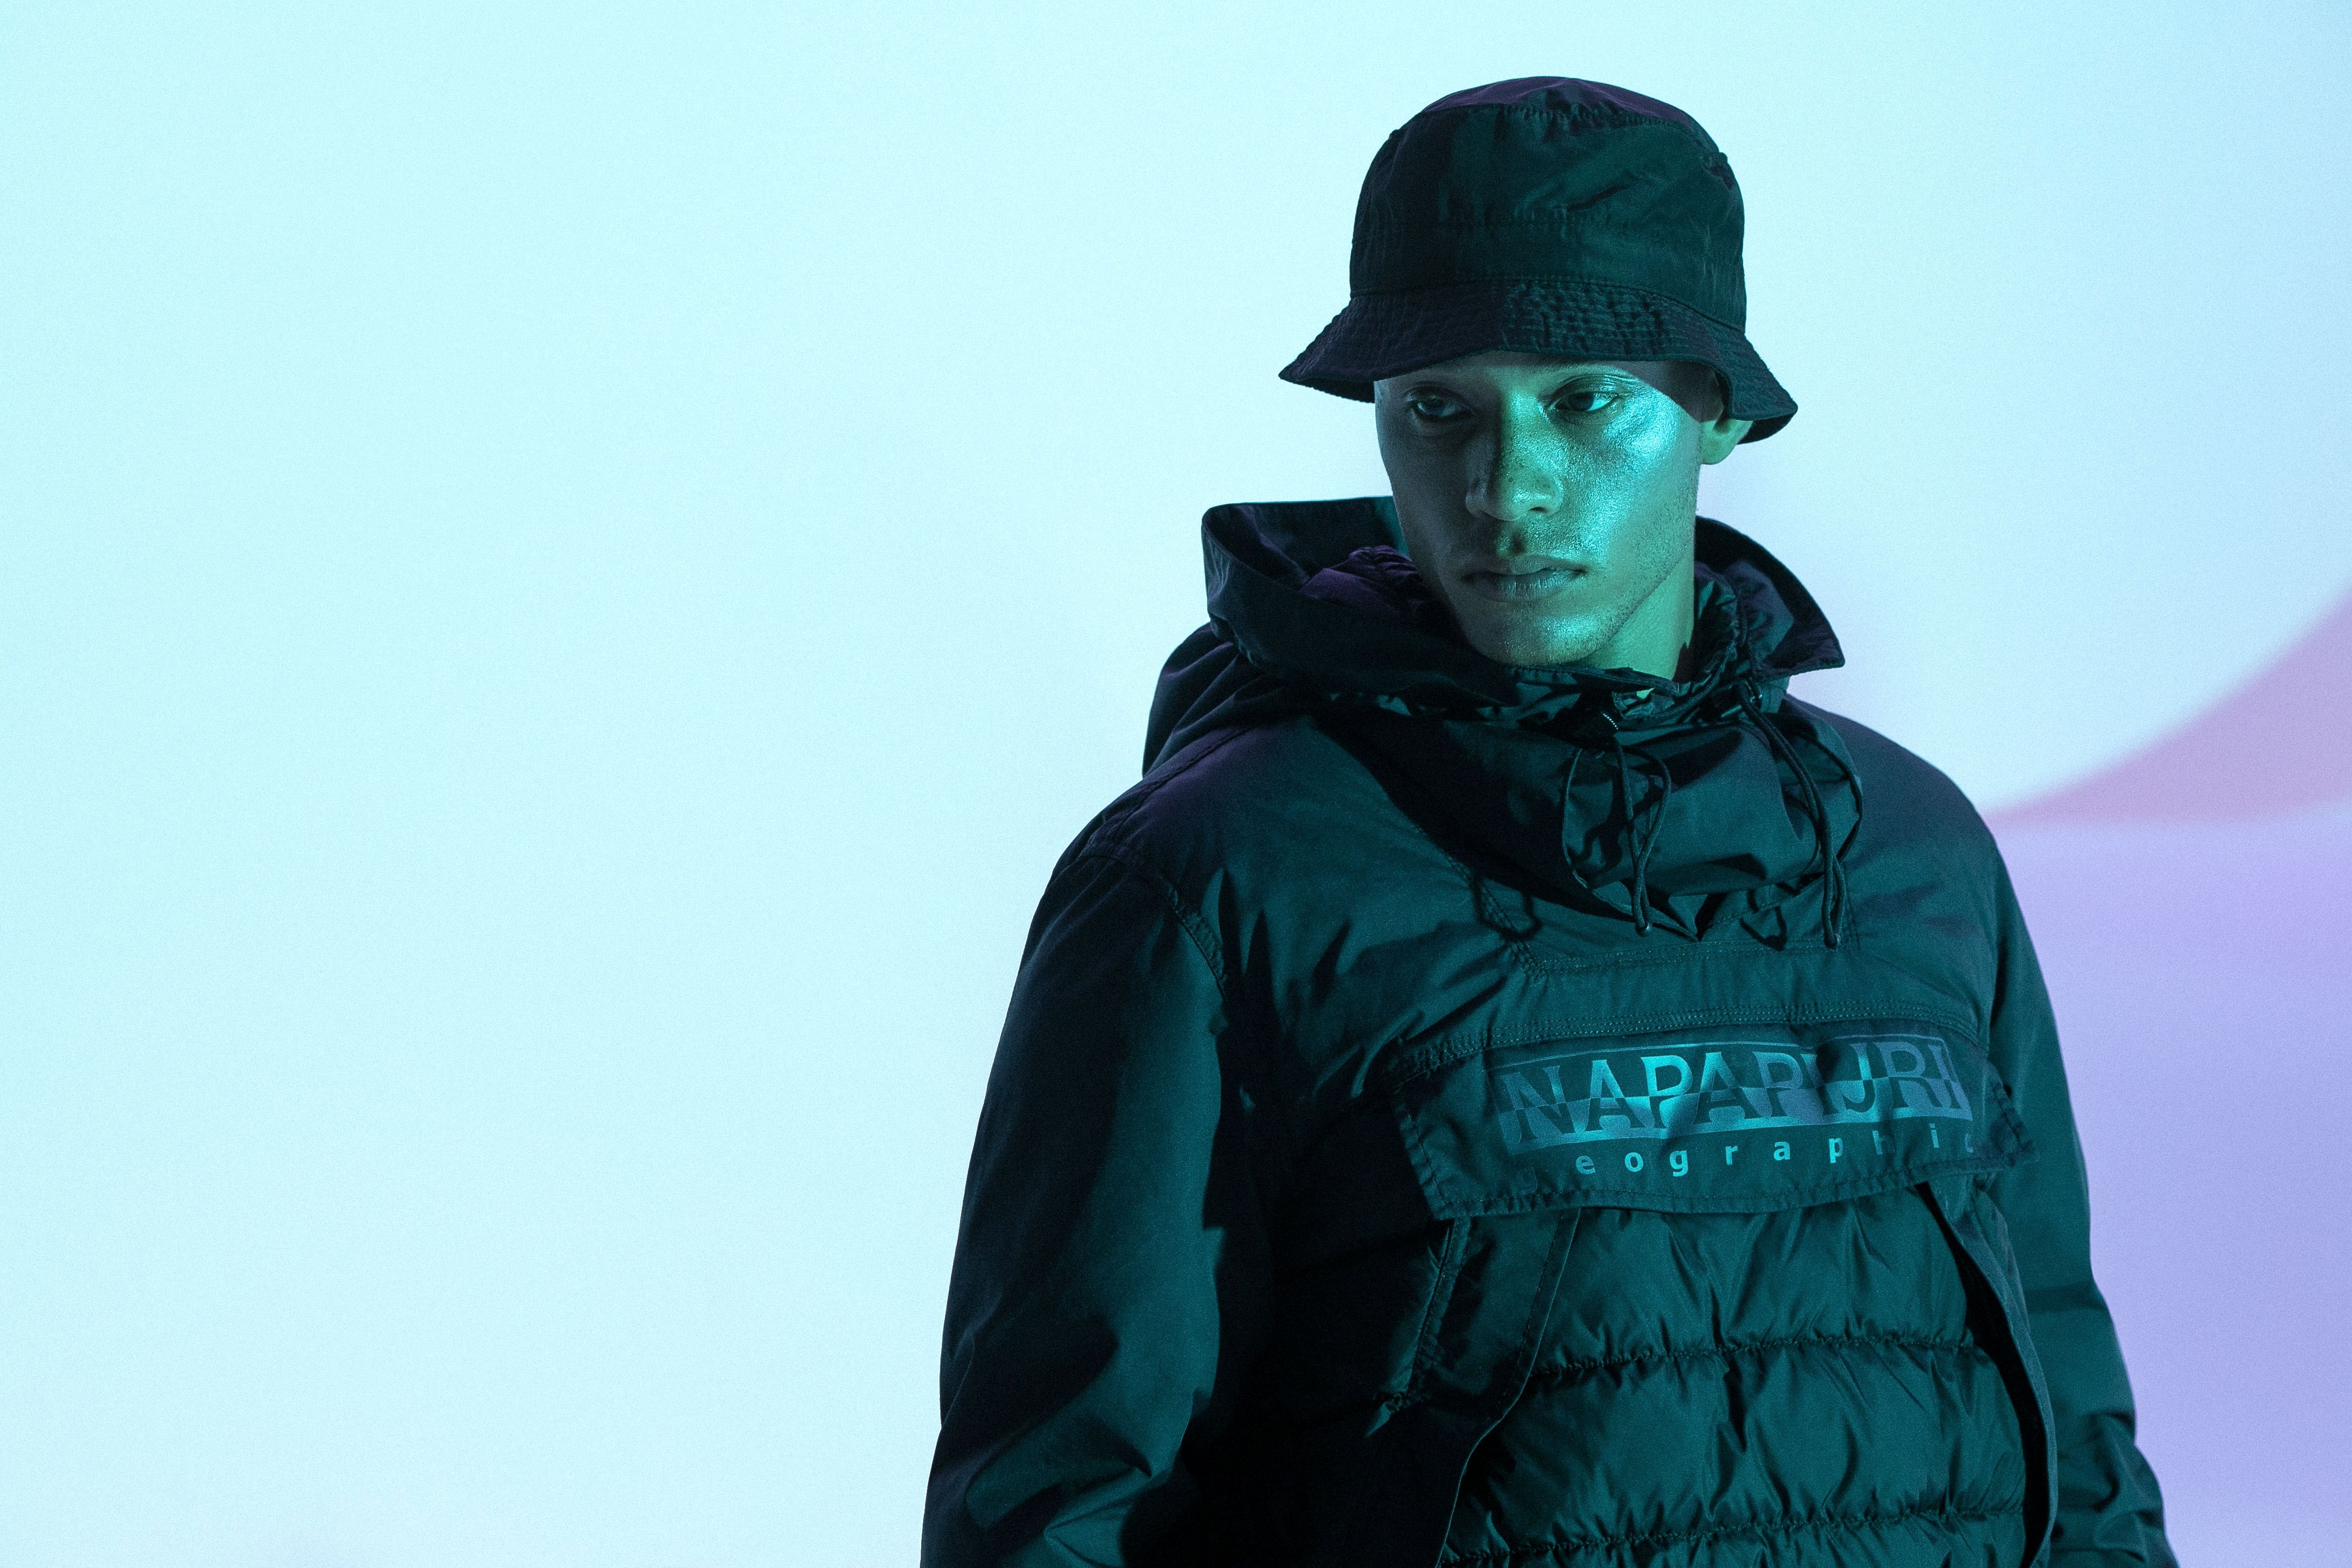 Napapijri Launches Infinity Collection, Featuring a 100% Recyclable Jacket